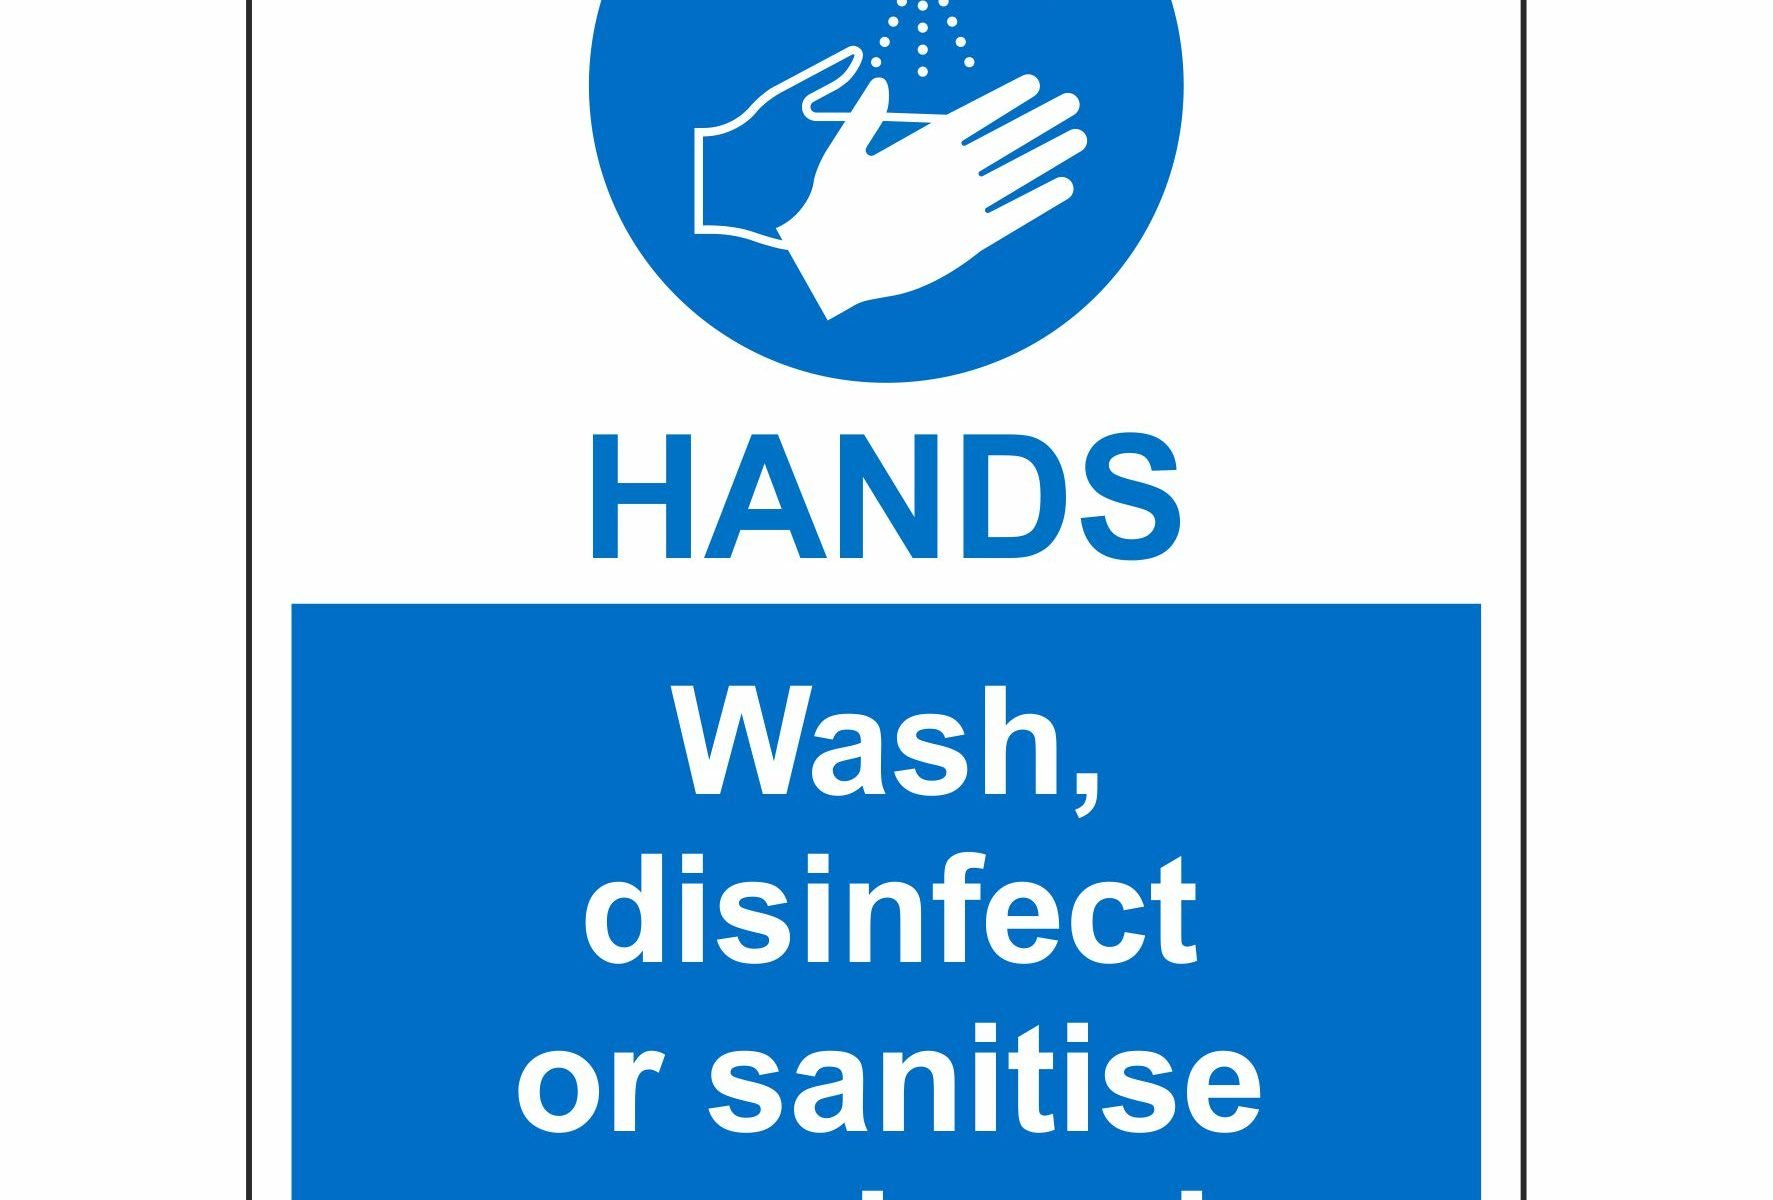 Wash, disinfect or sanitise your hands